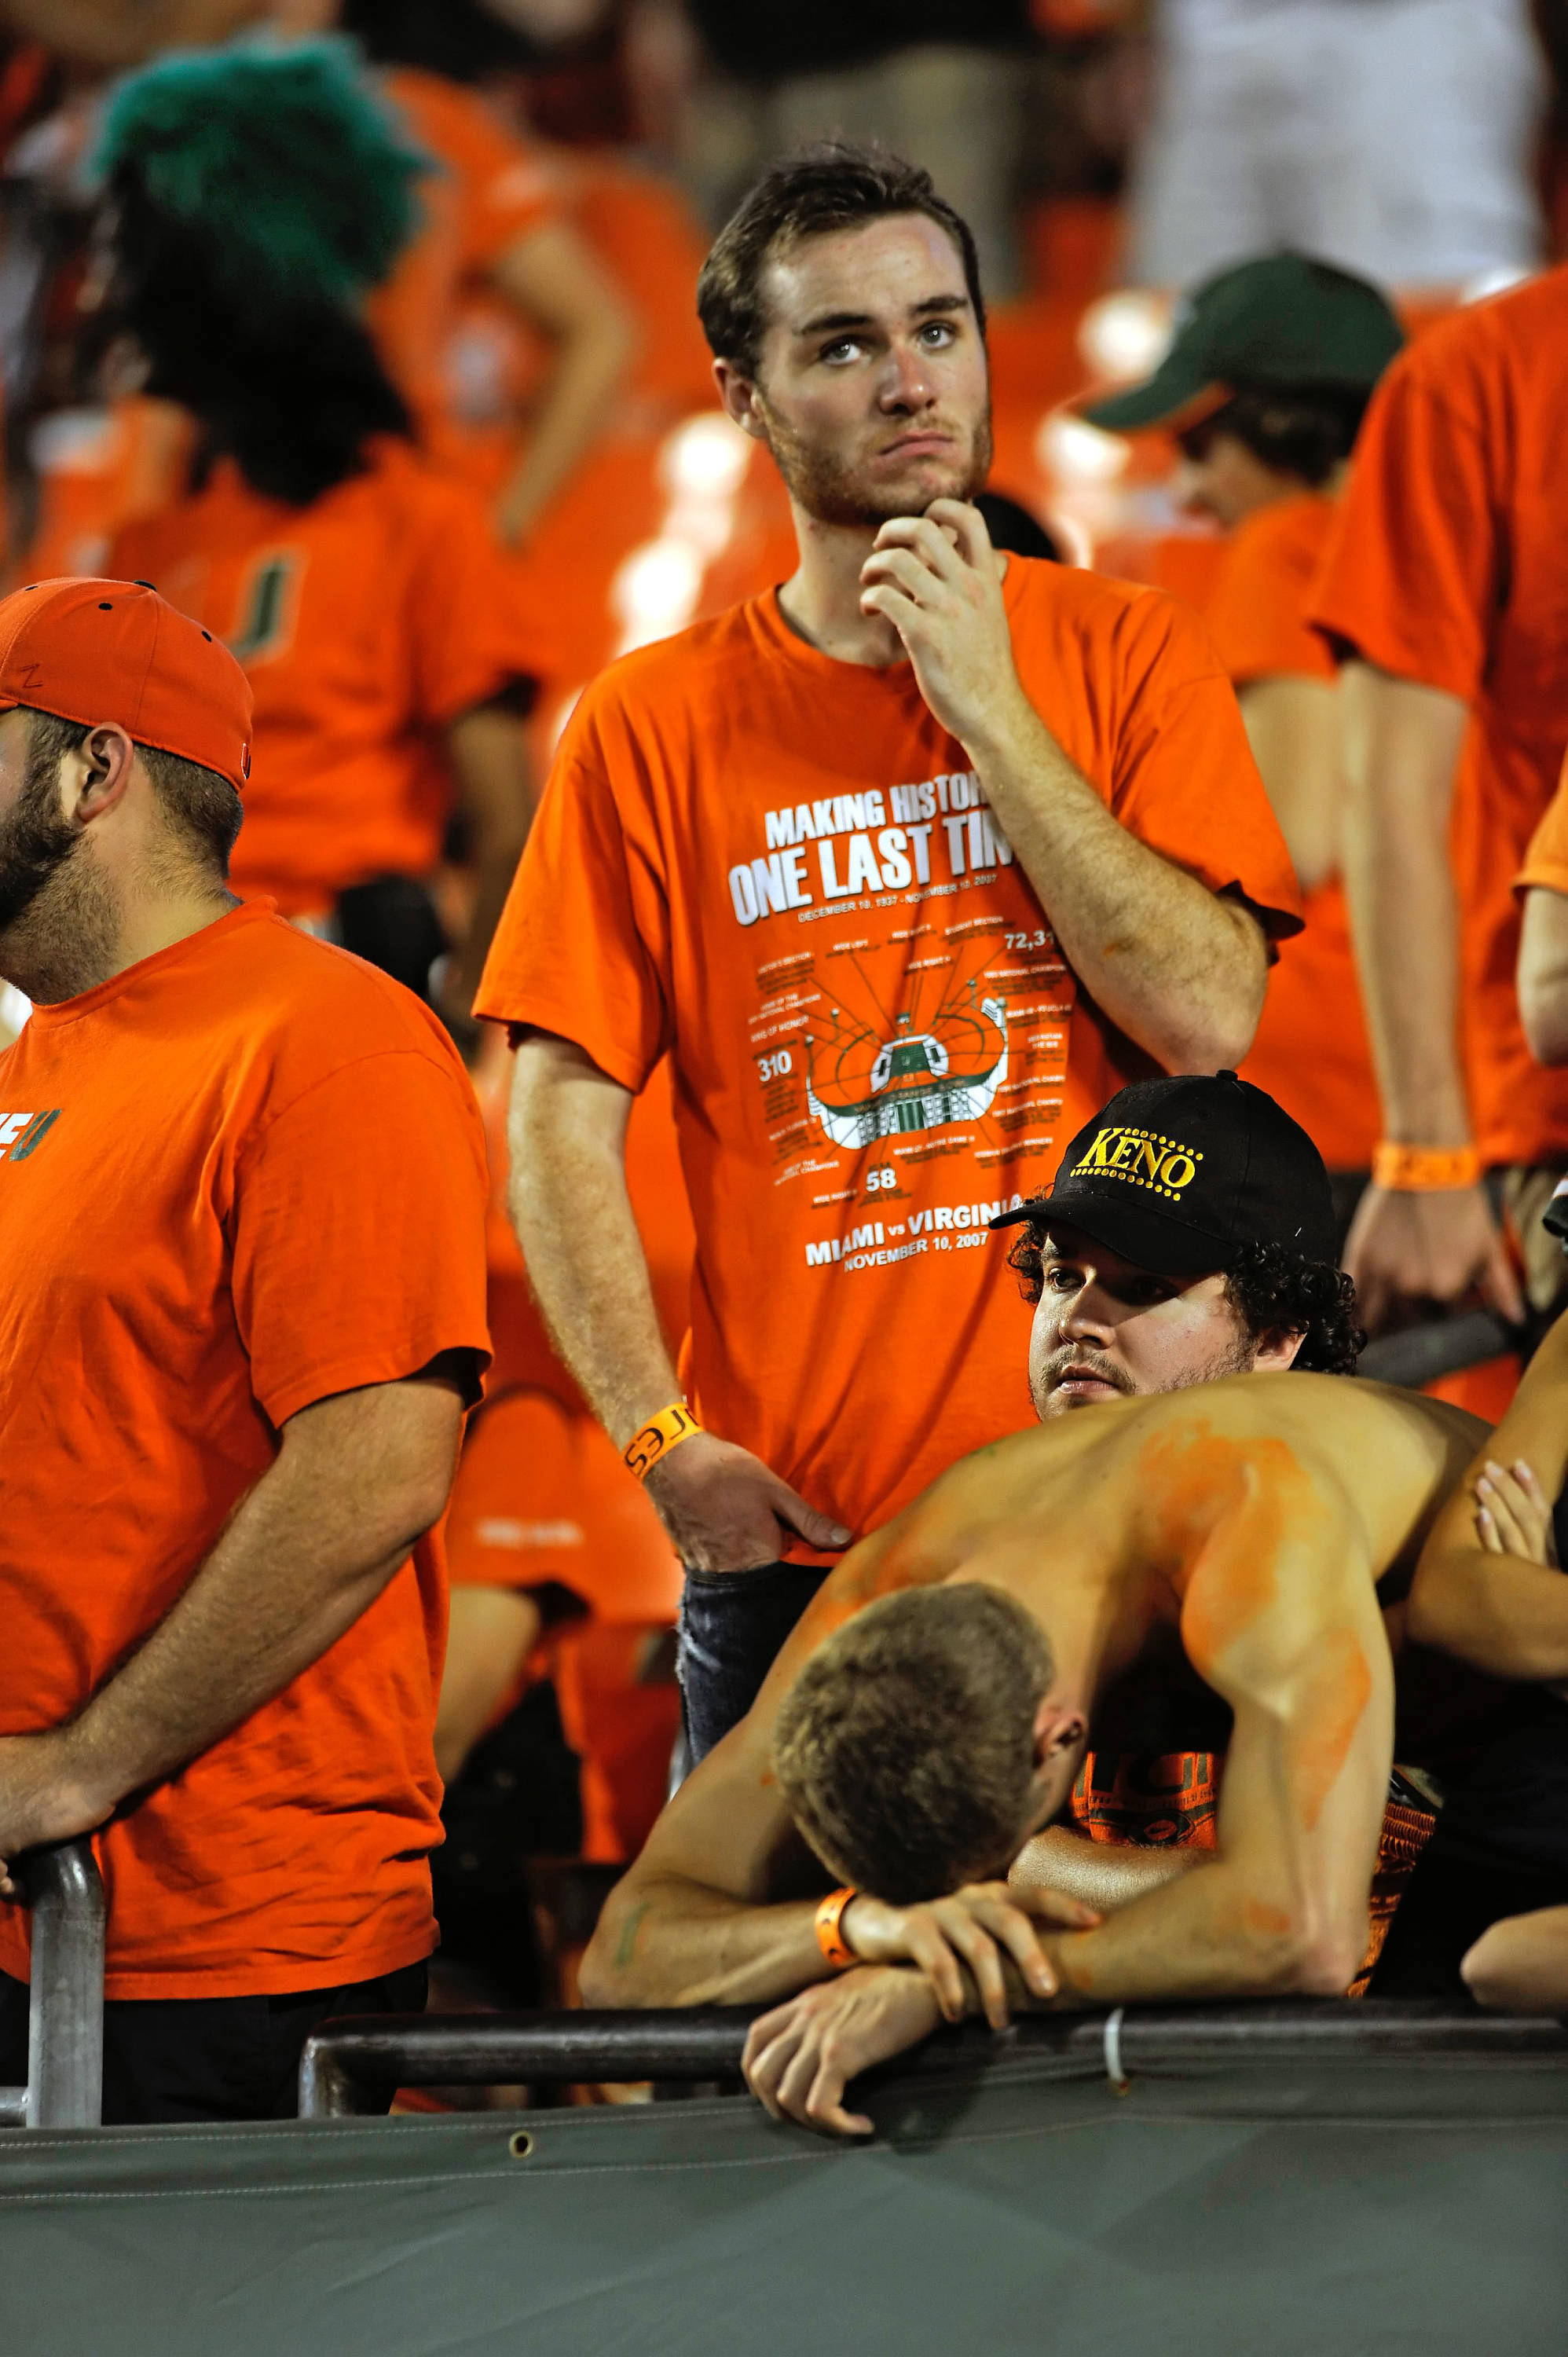 Dejected Miami fans watch on as Florida State defeated Miami 45-17.